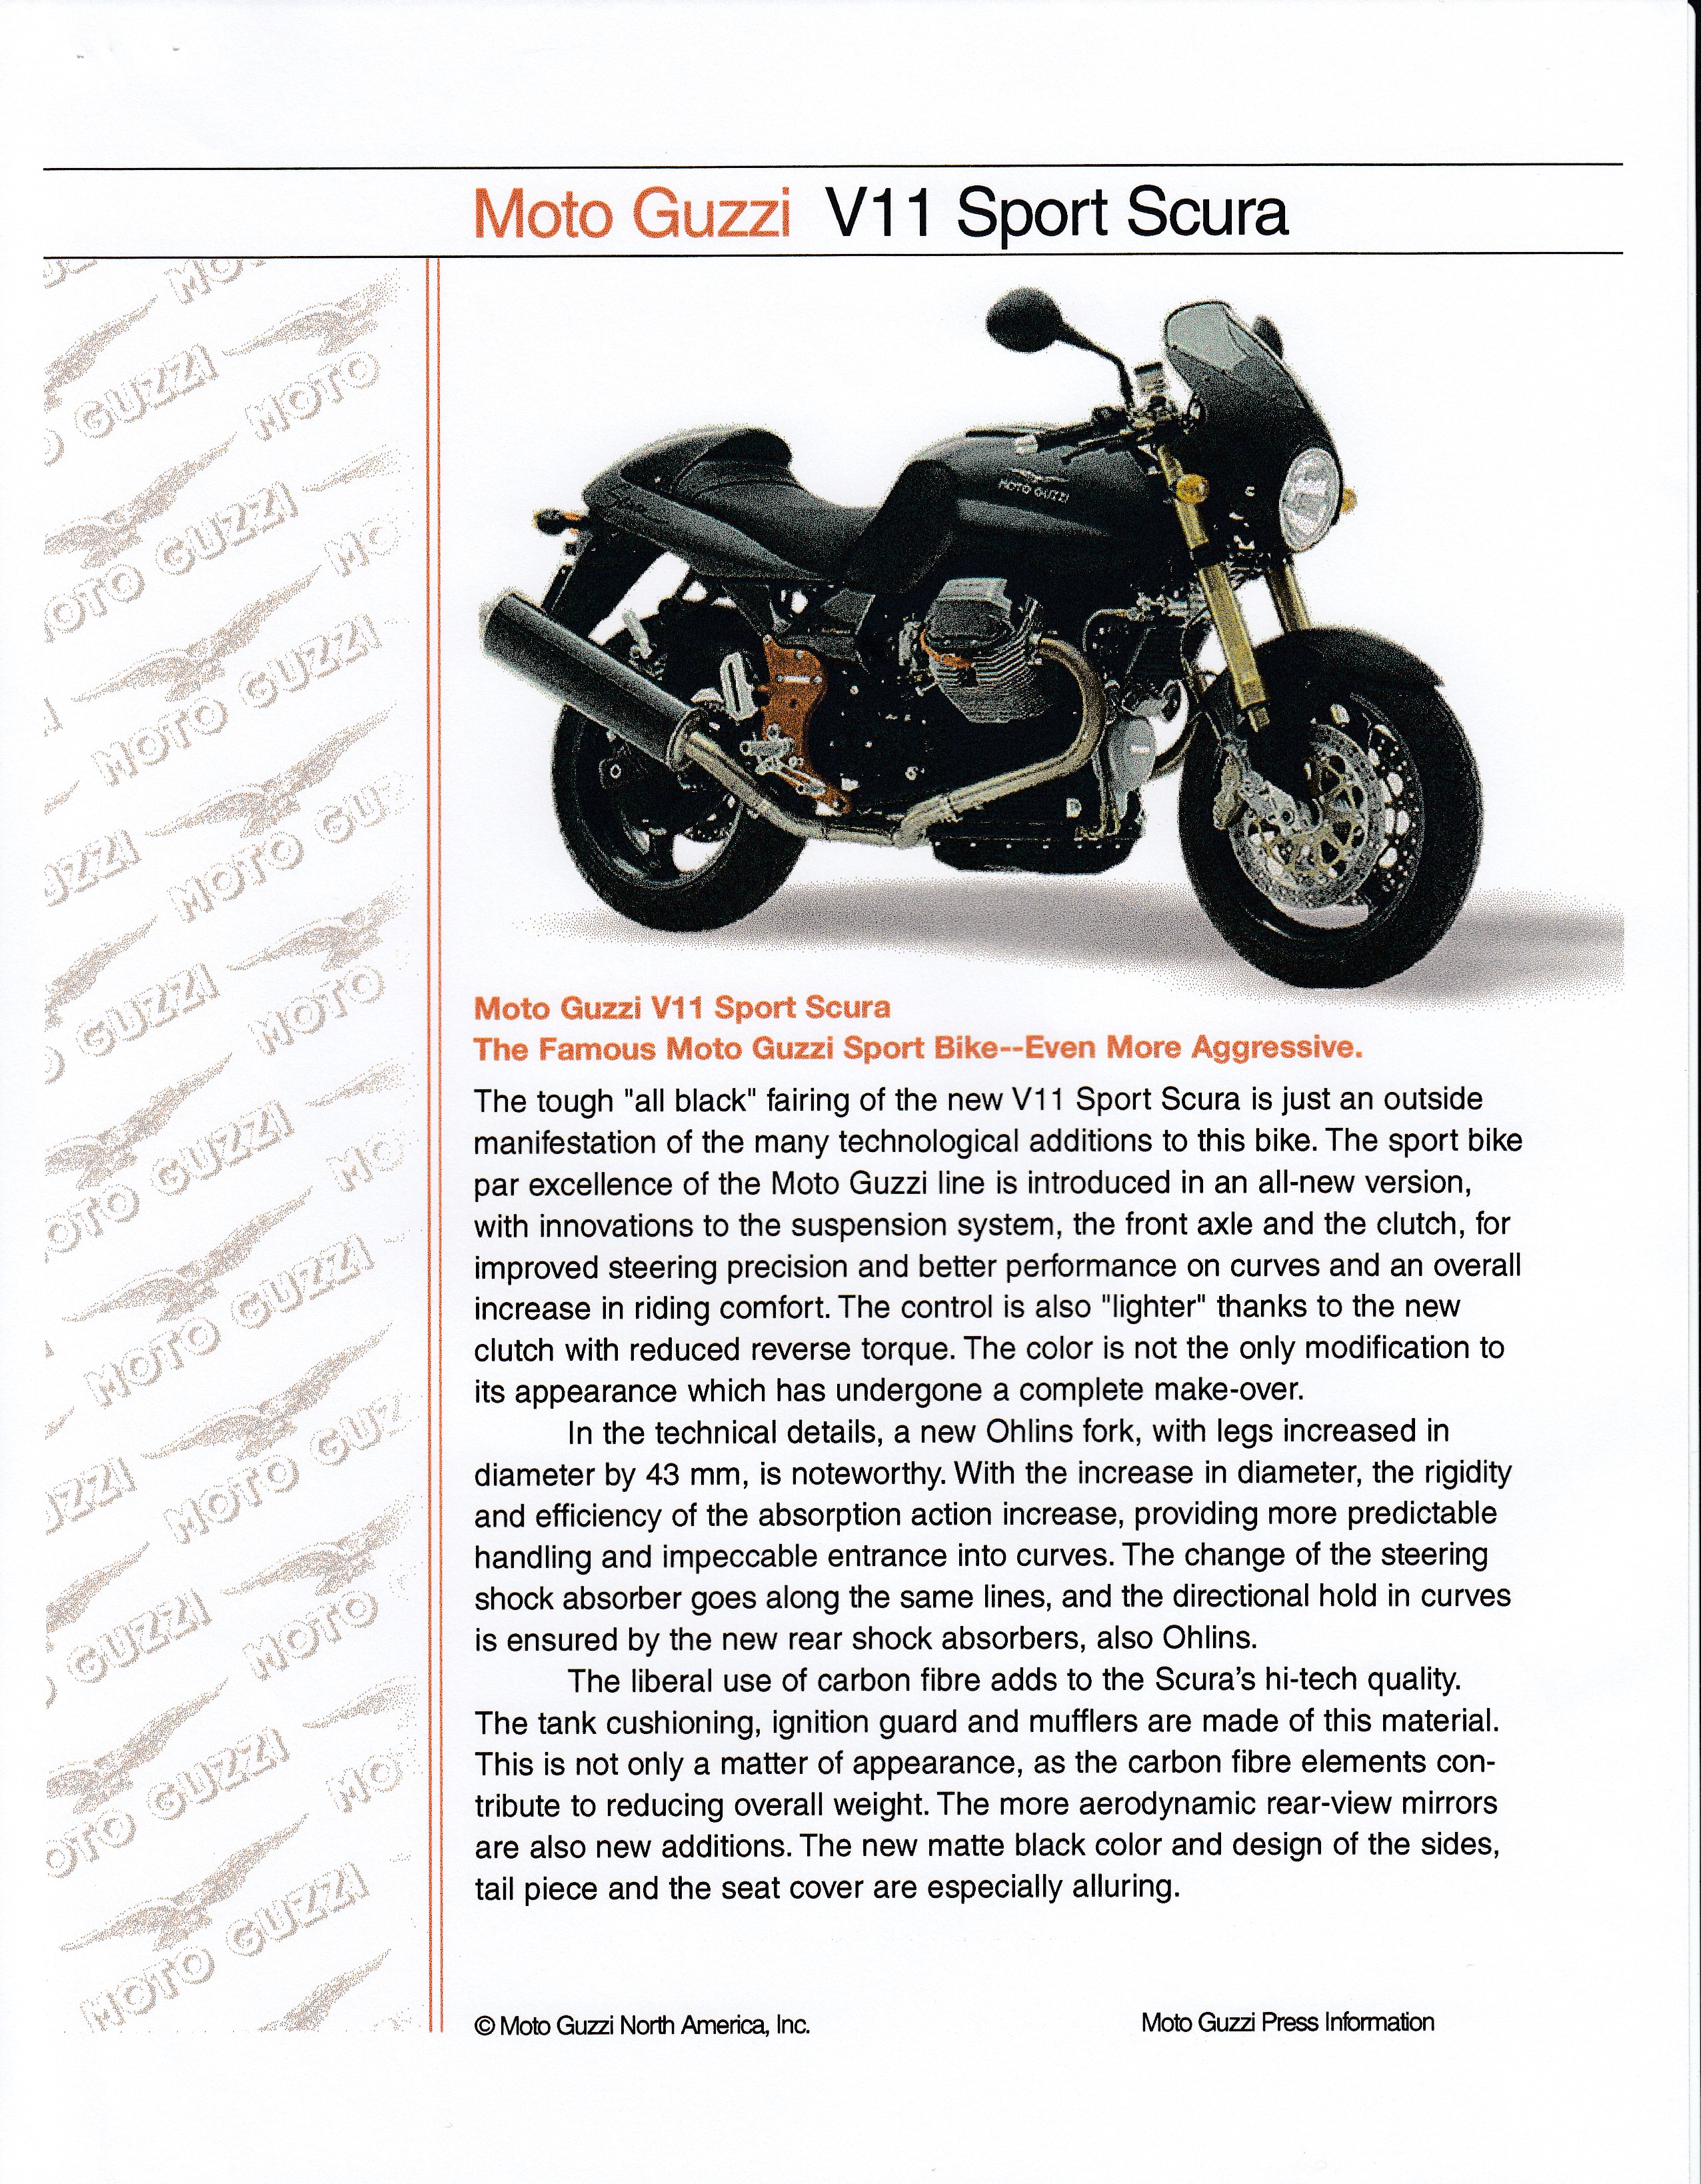 Press release - Moto Guzzi press information 2002